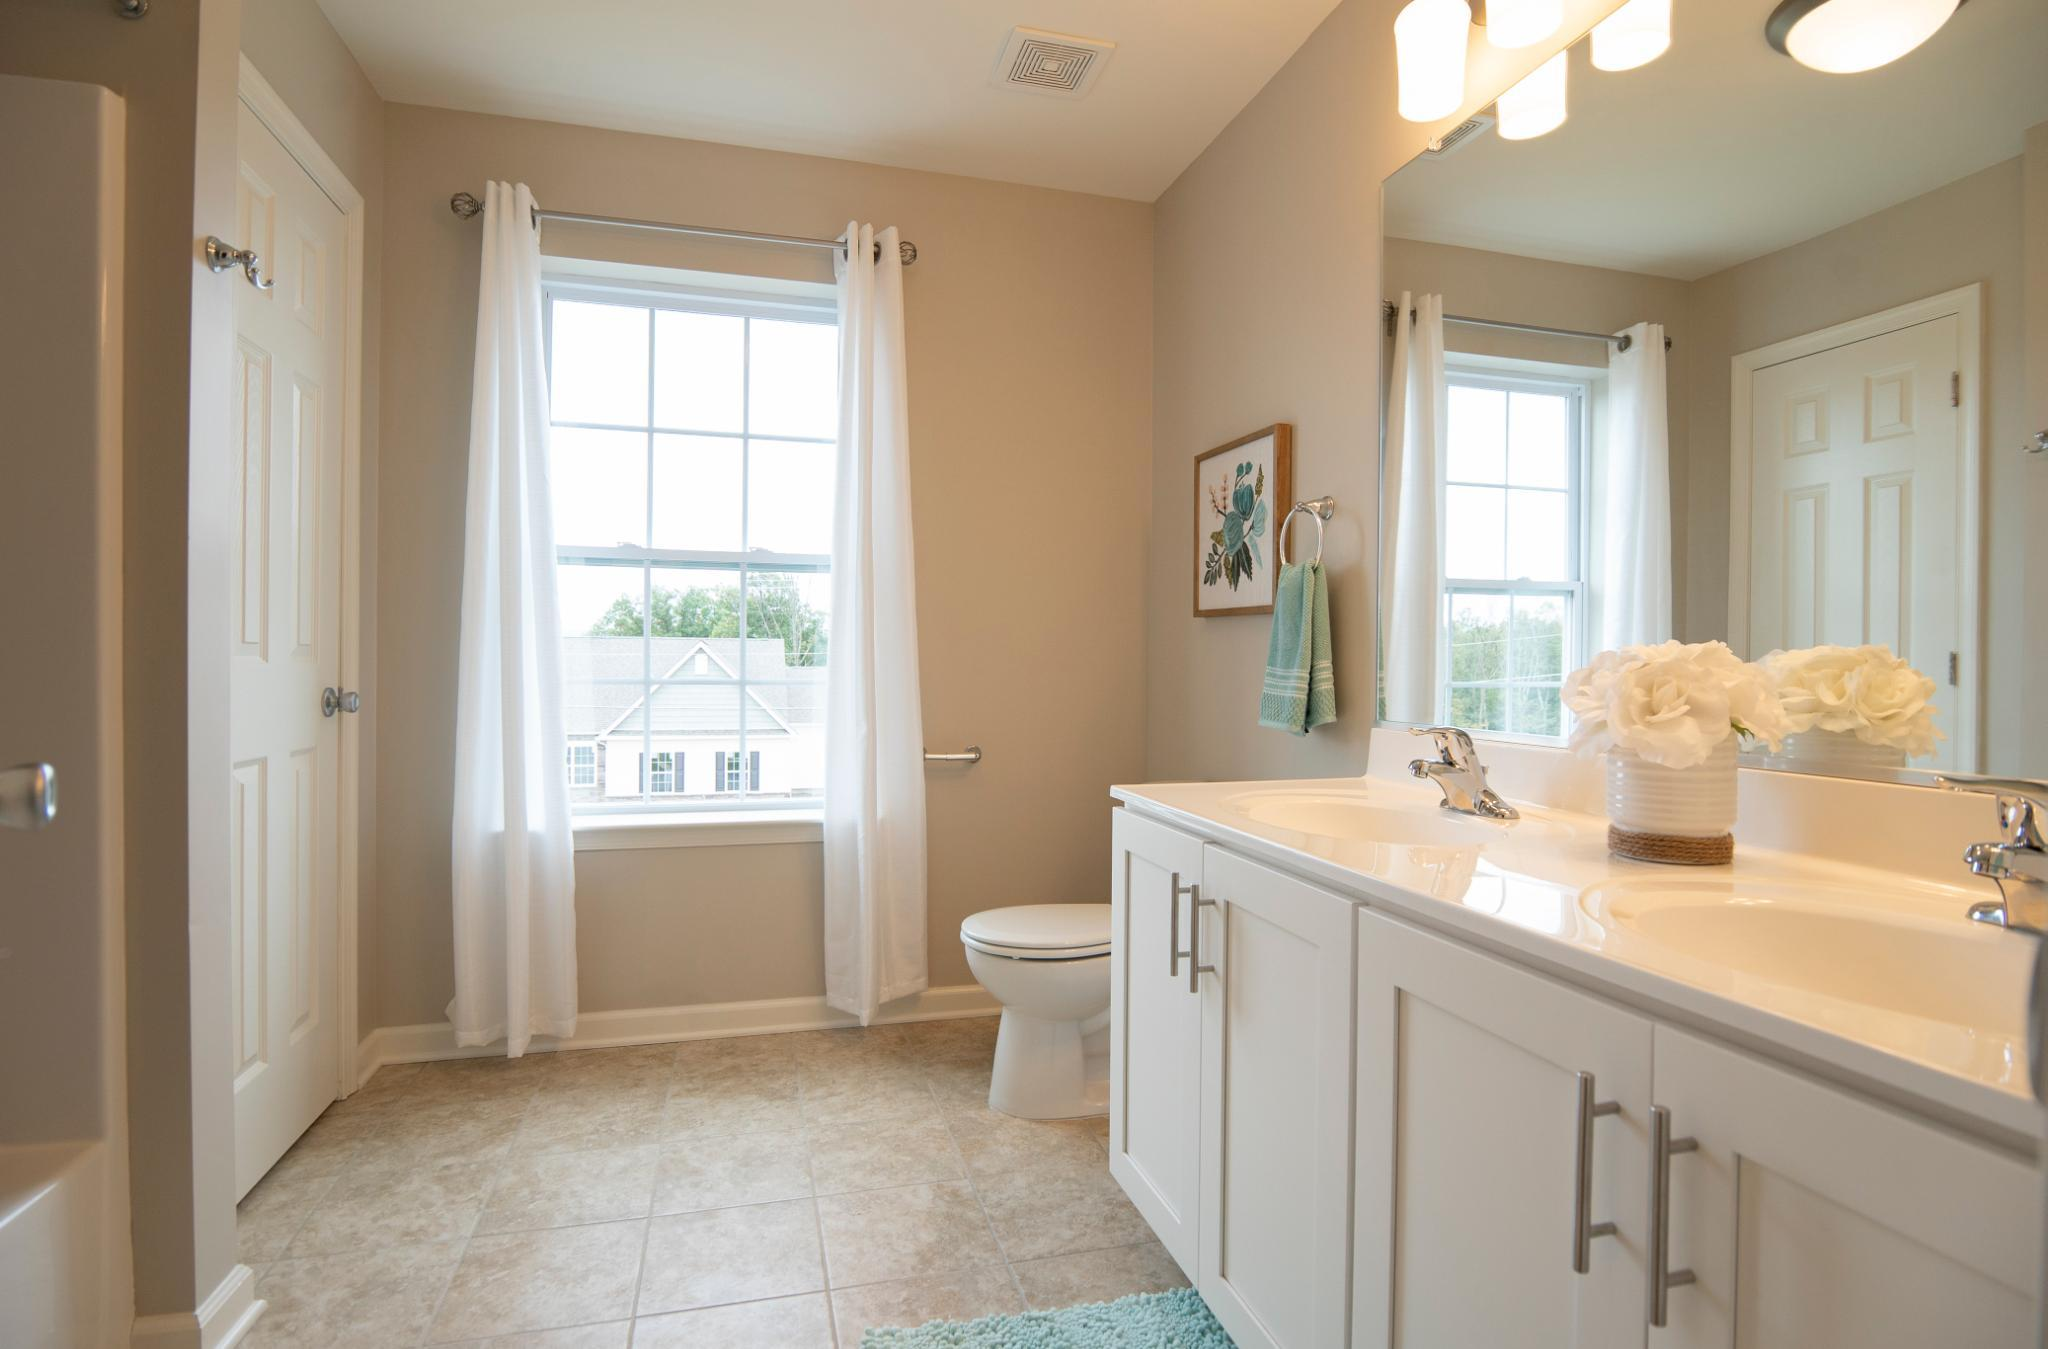 Bathroom featured in the Kingston Traditional By Tuskes Homes in Allentown-Bethlehem, PA